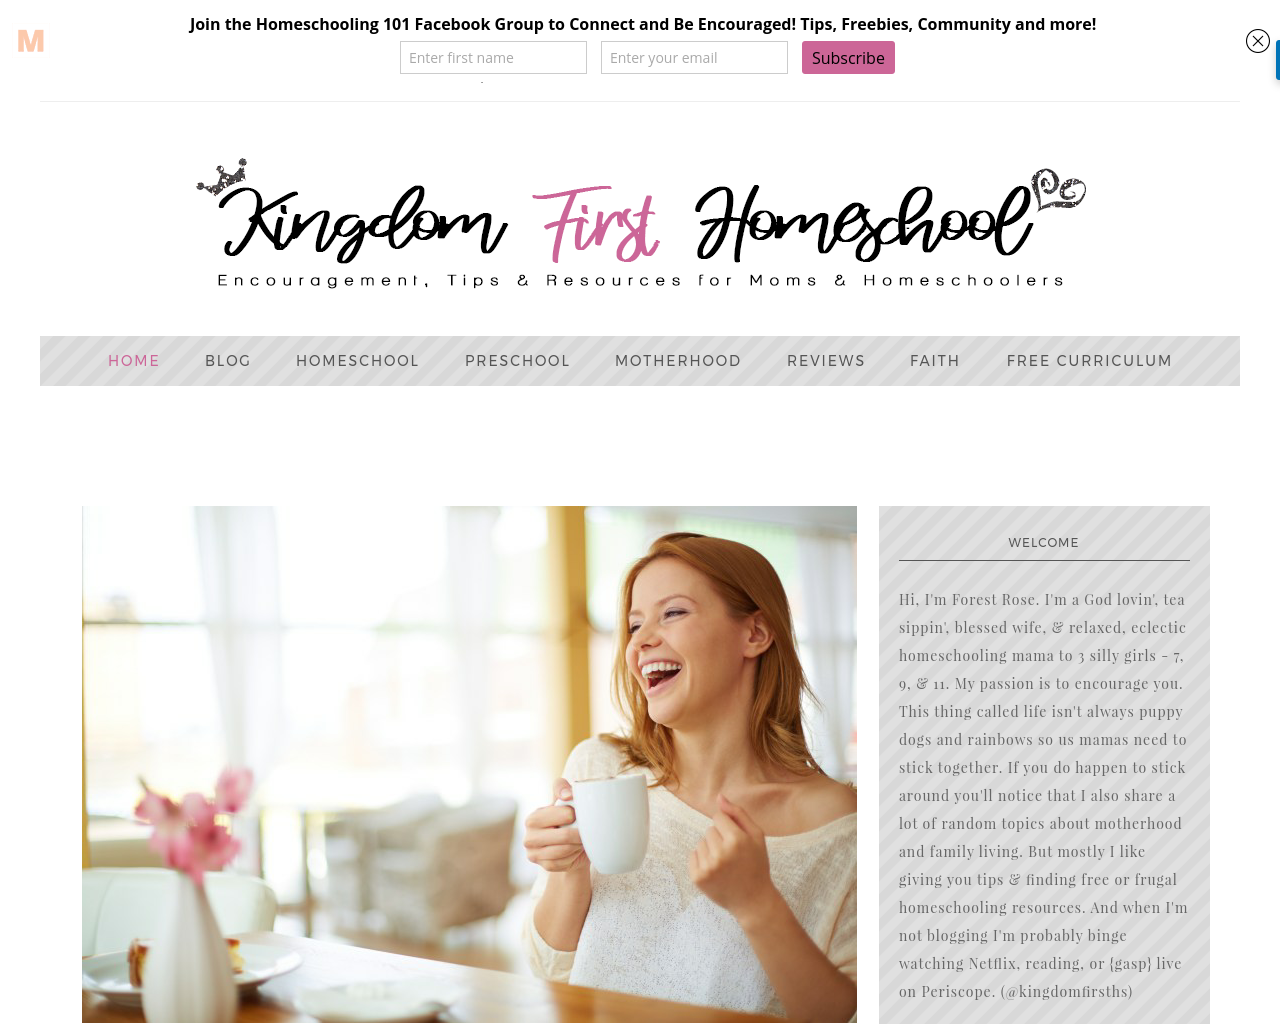 Kingdom-First-Homeschool-Advertising-Reviews-Pricing